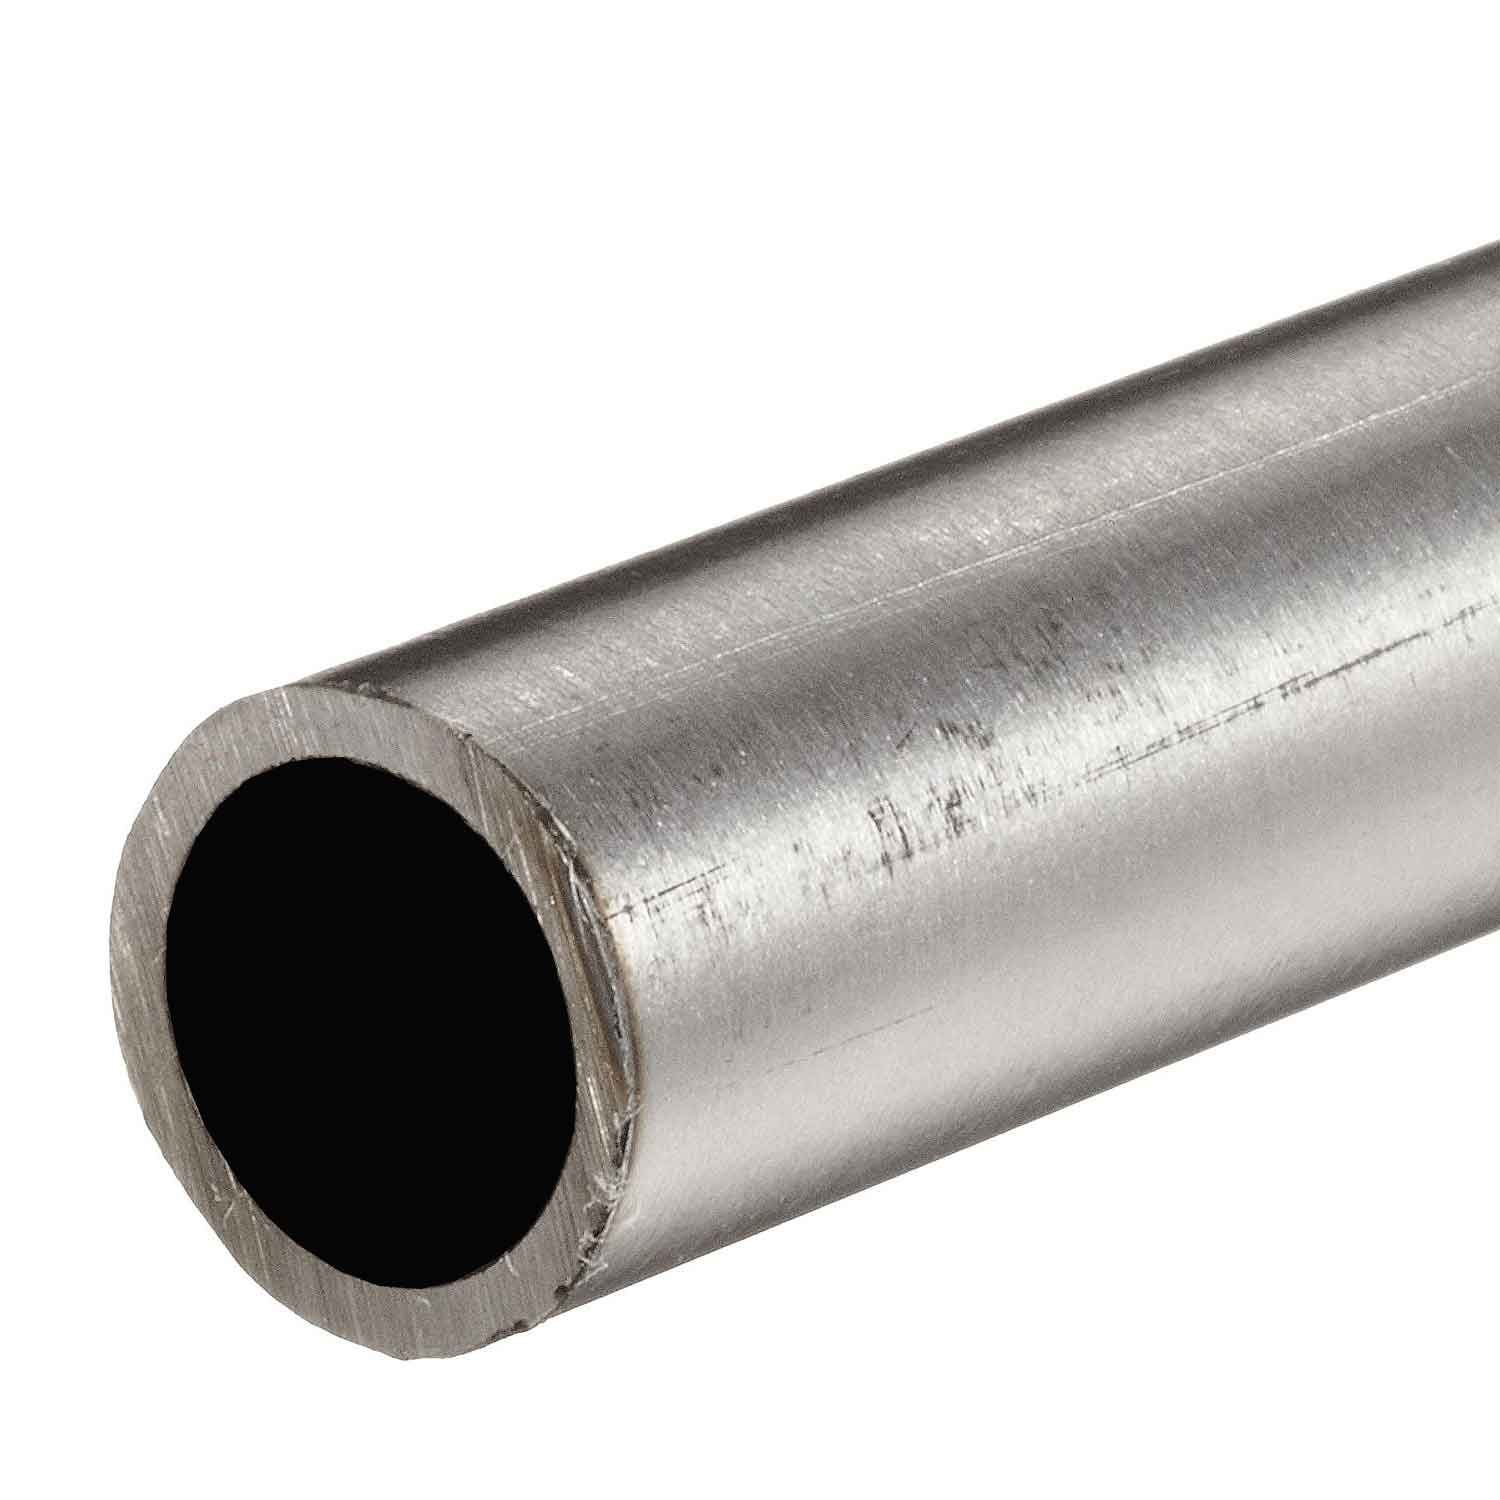 Online Metal Supply 316 Stainless Steel, Round Tube, OD: 1.000 (1 inch), Wall: 0.120 inch, Length: 36 inches, Welded